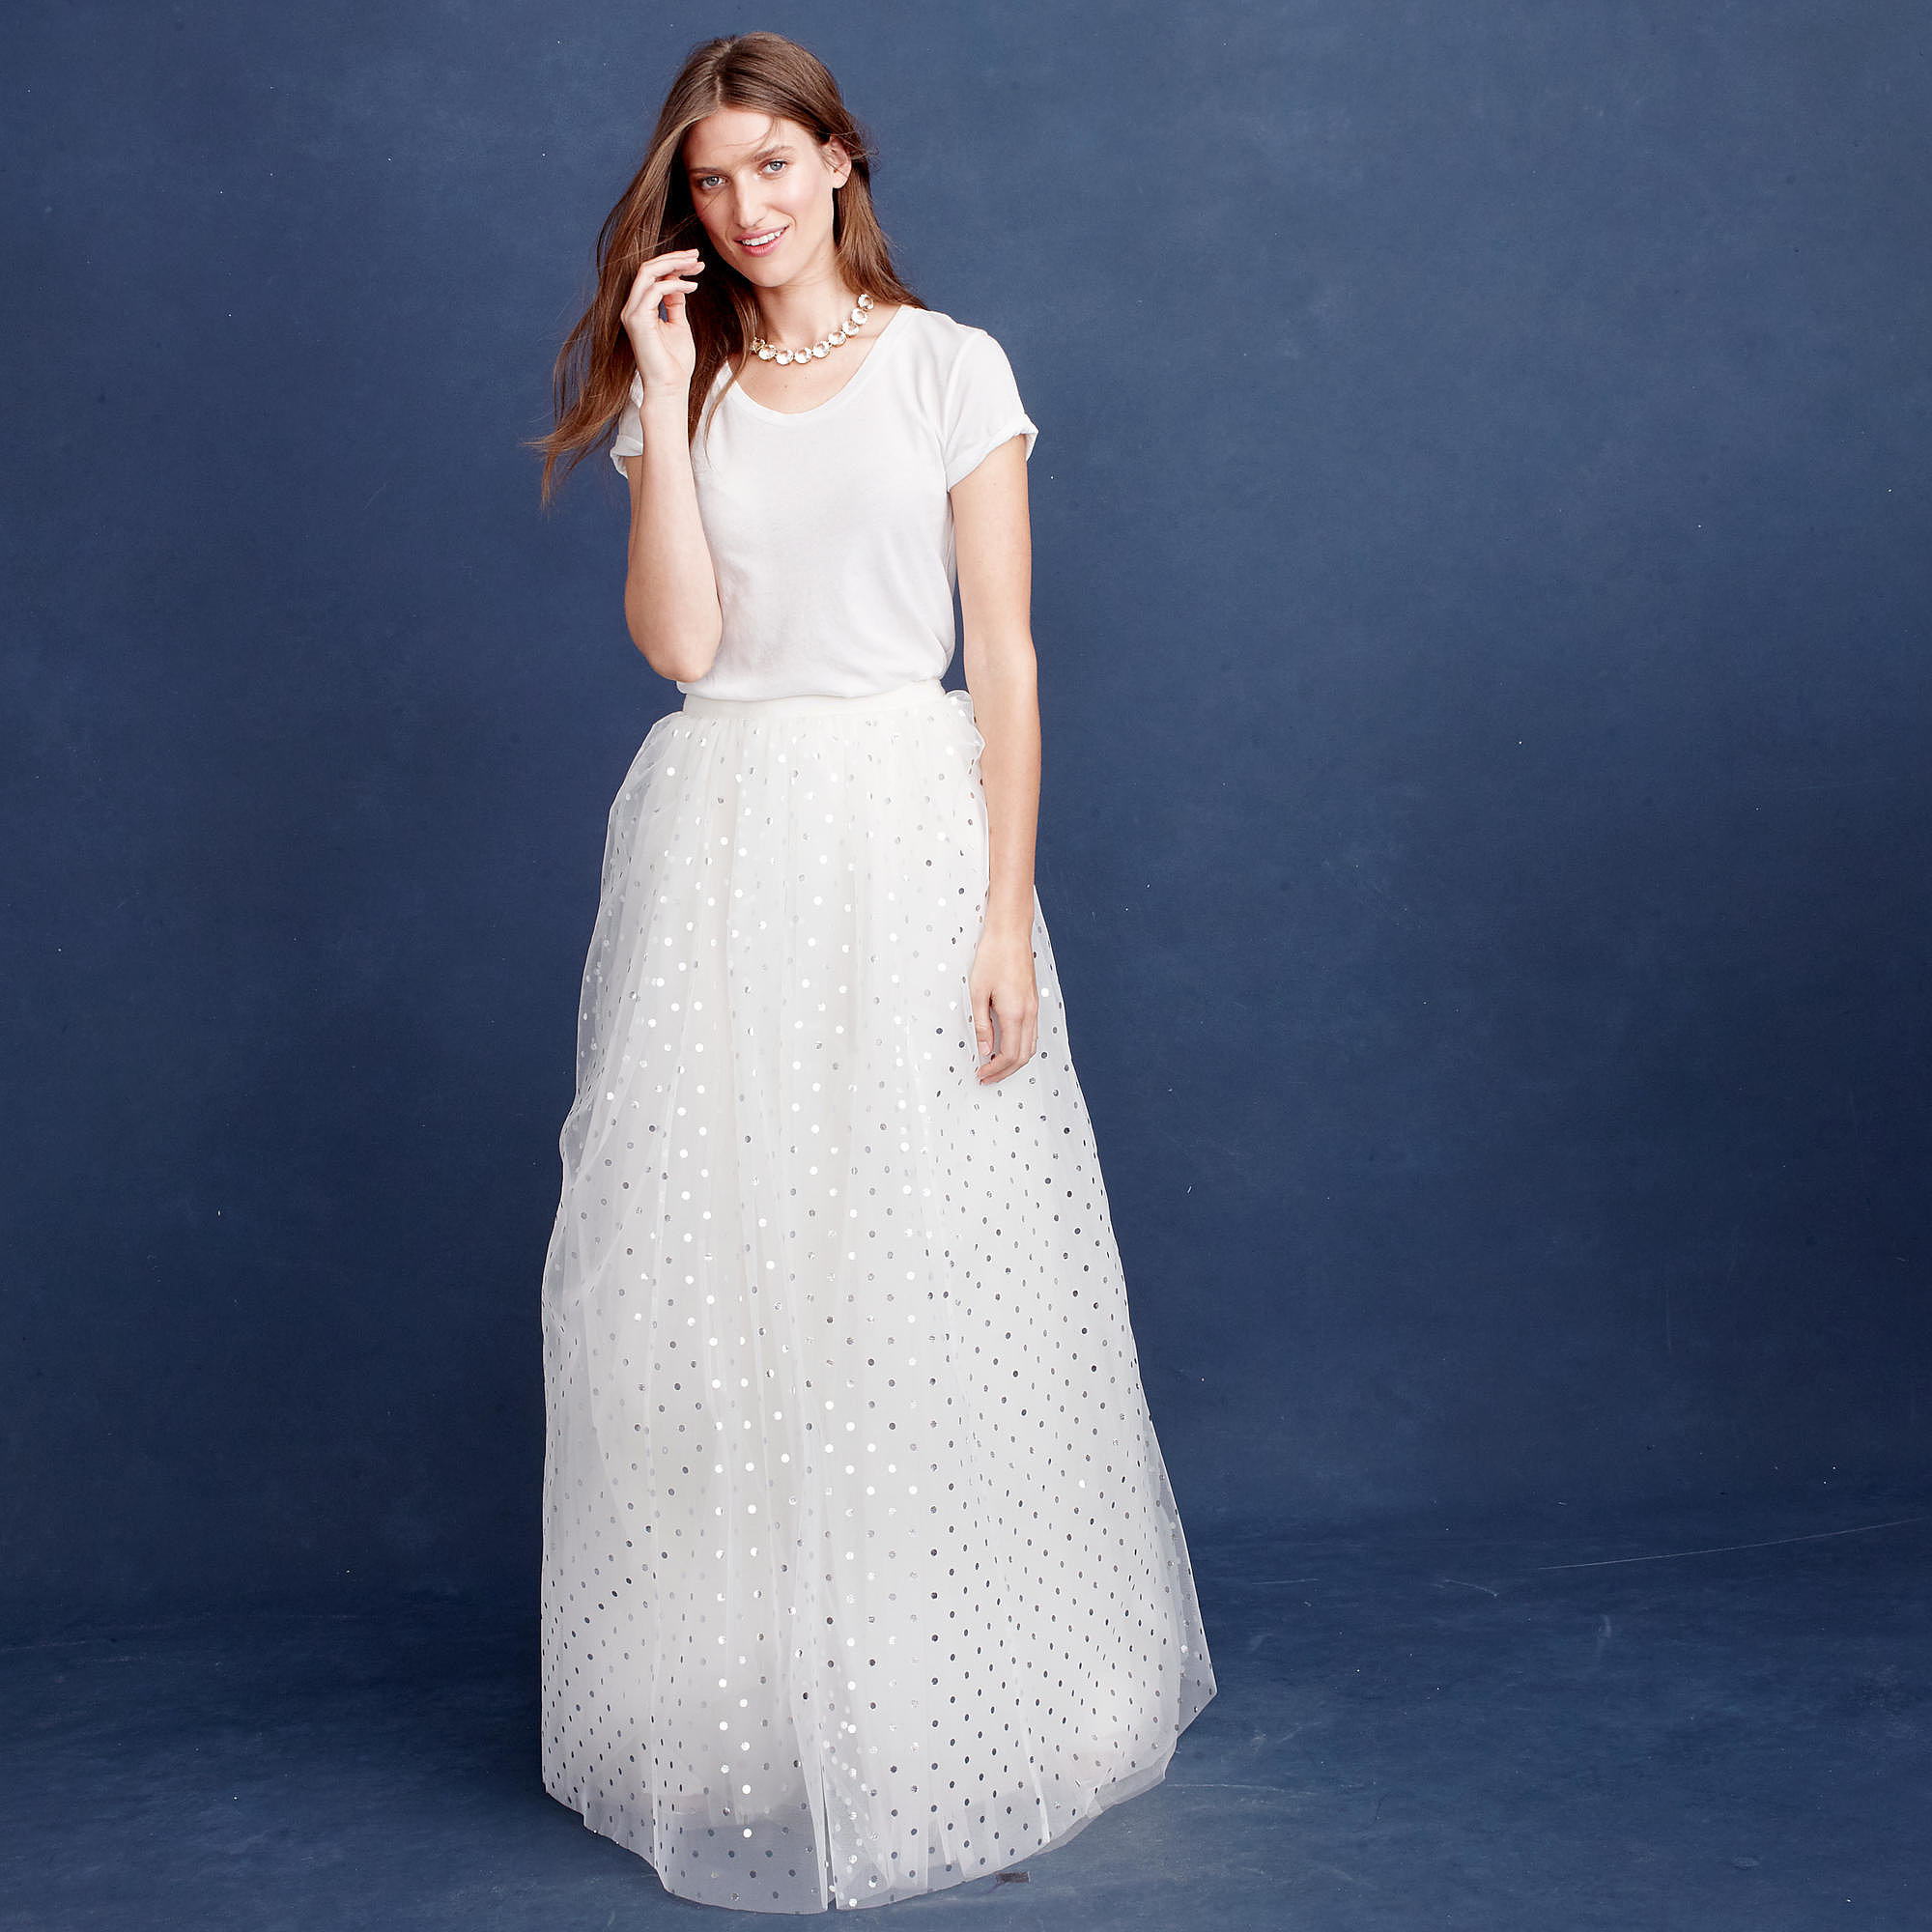 J Crew Dalila Tulle Skirt 750 20 Gorgeous Wedding